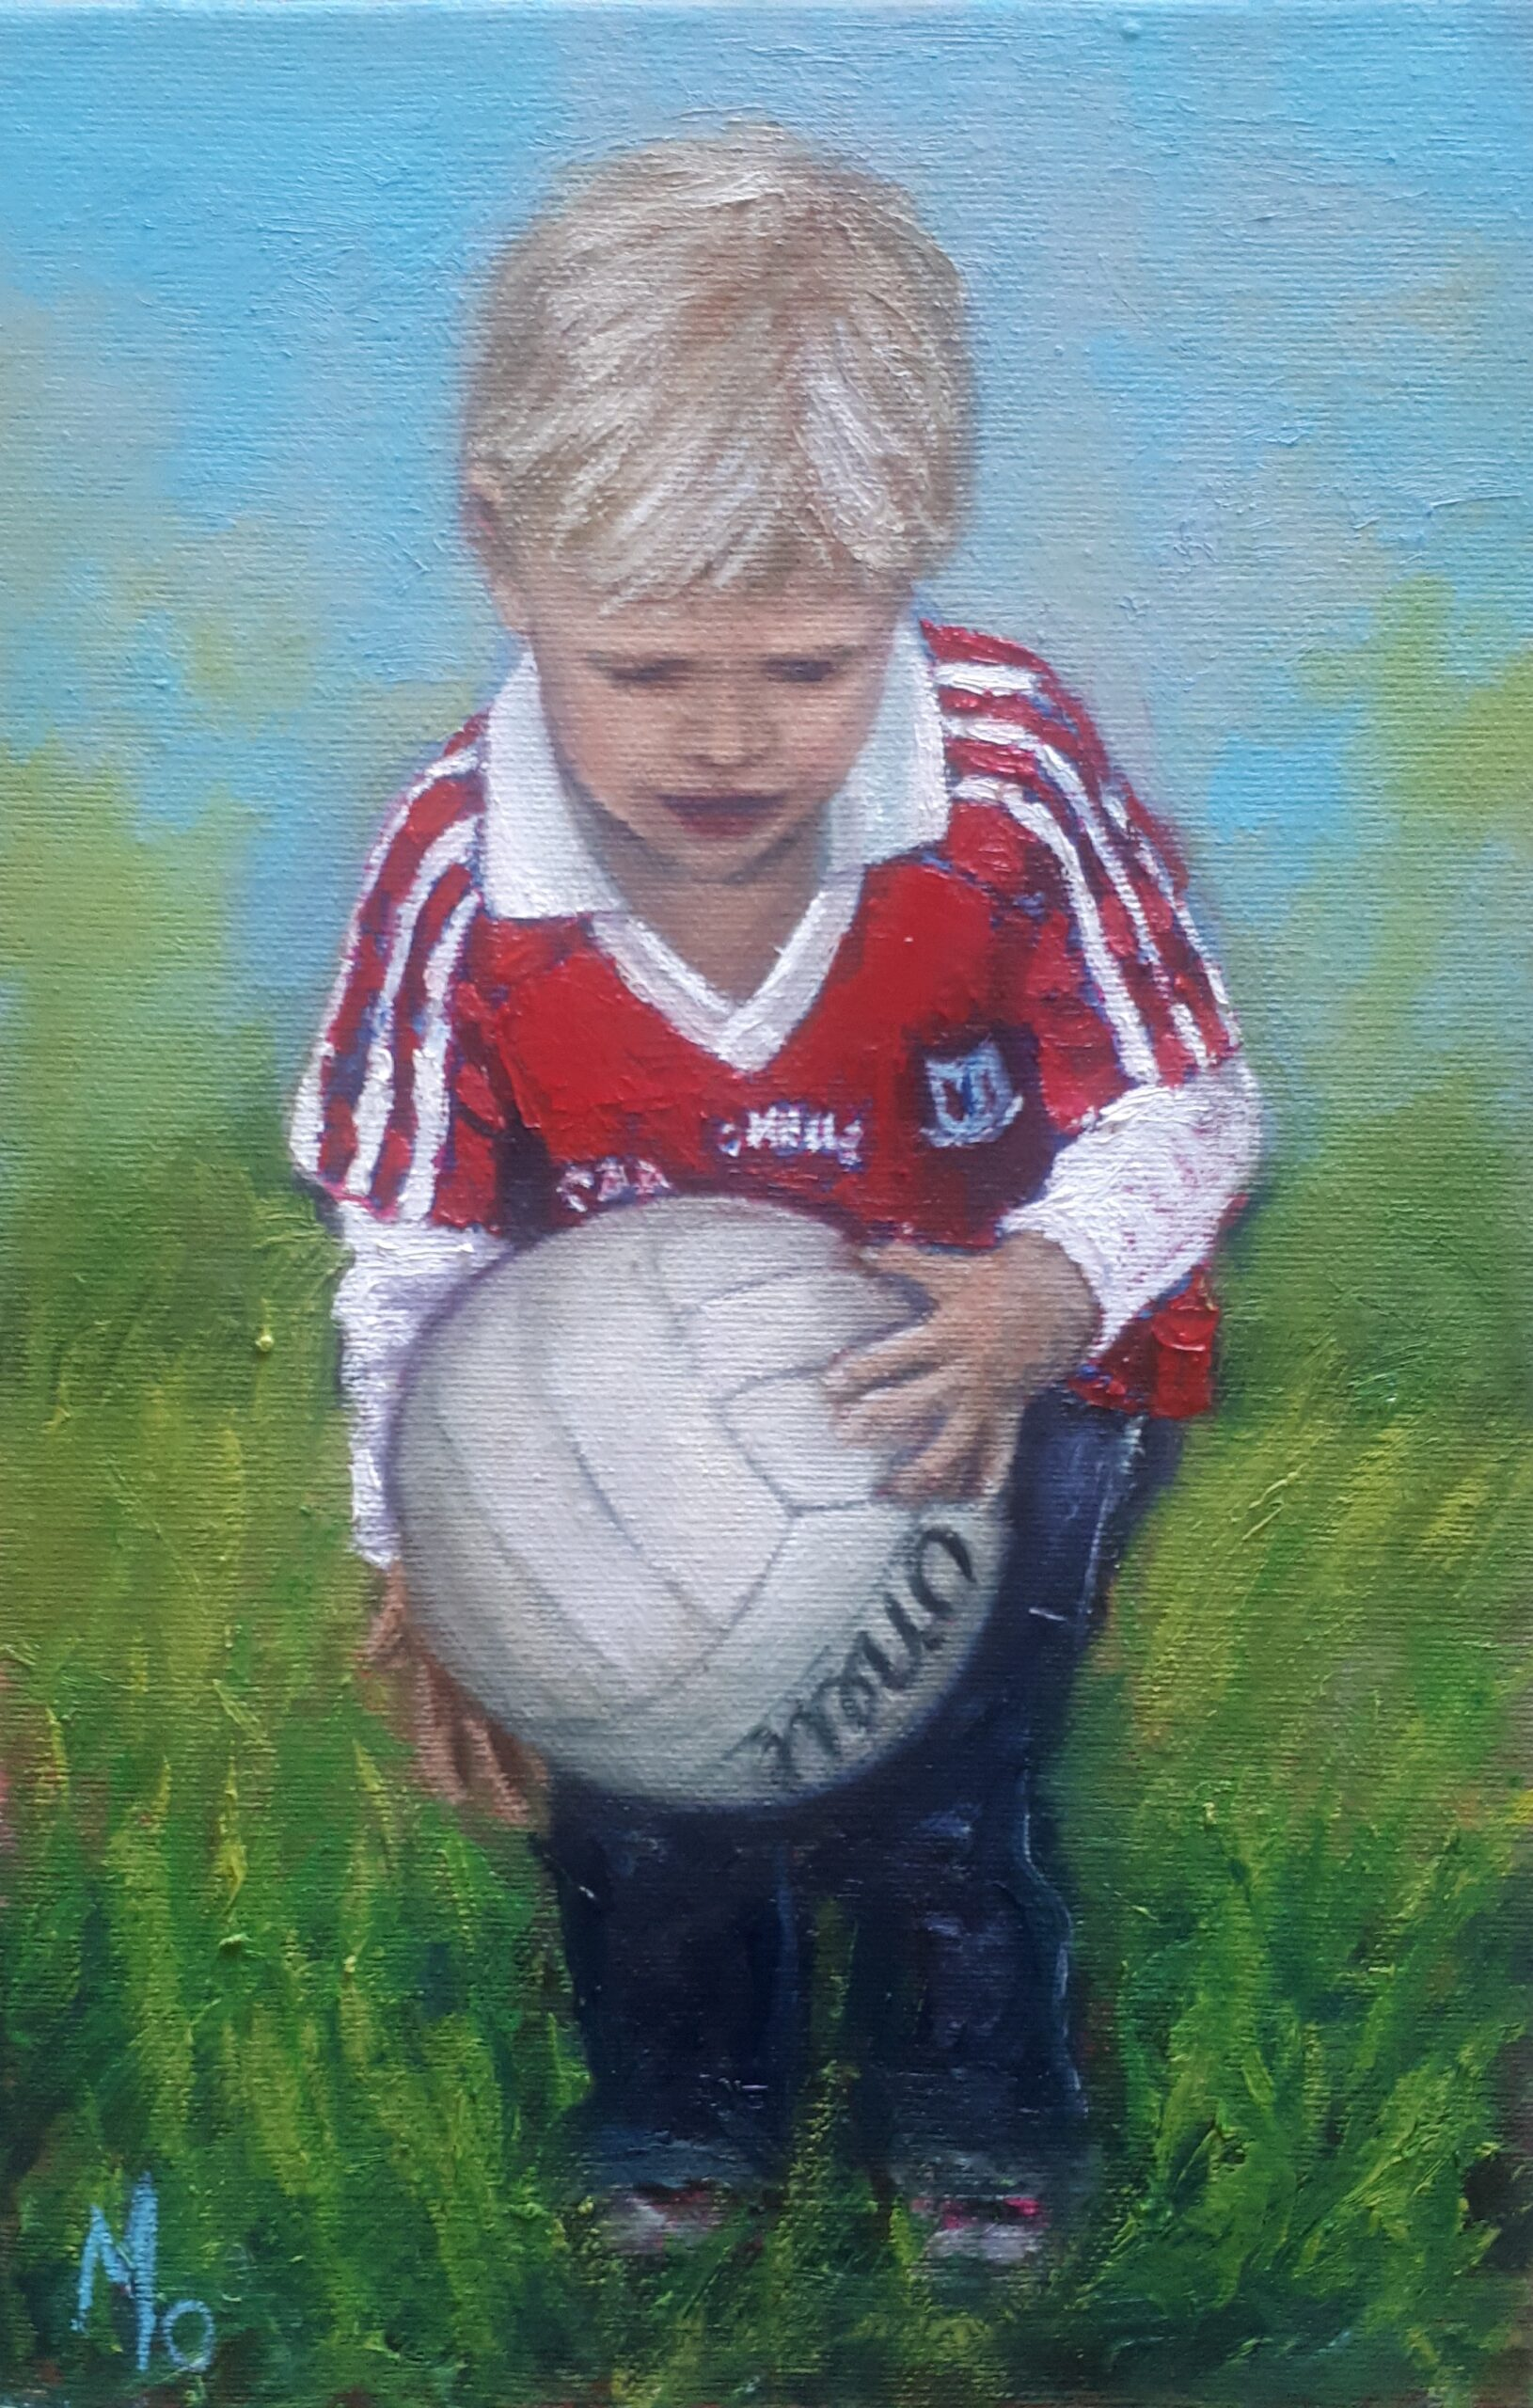 young boy with red jersey with football